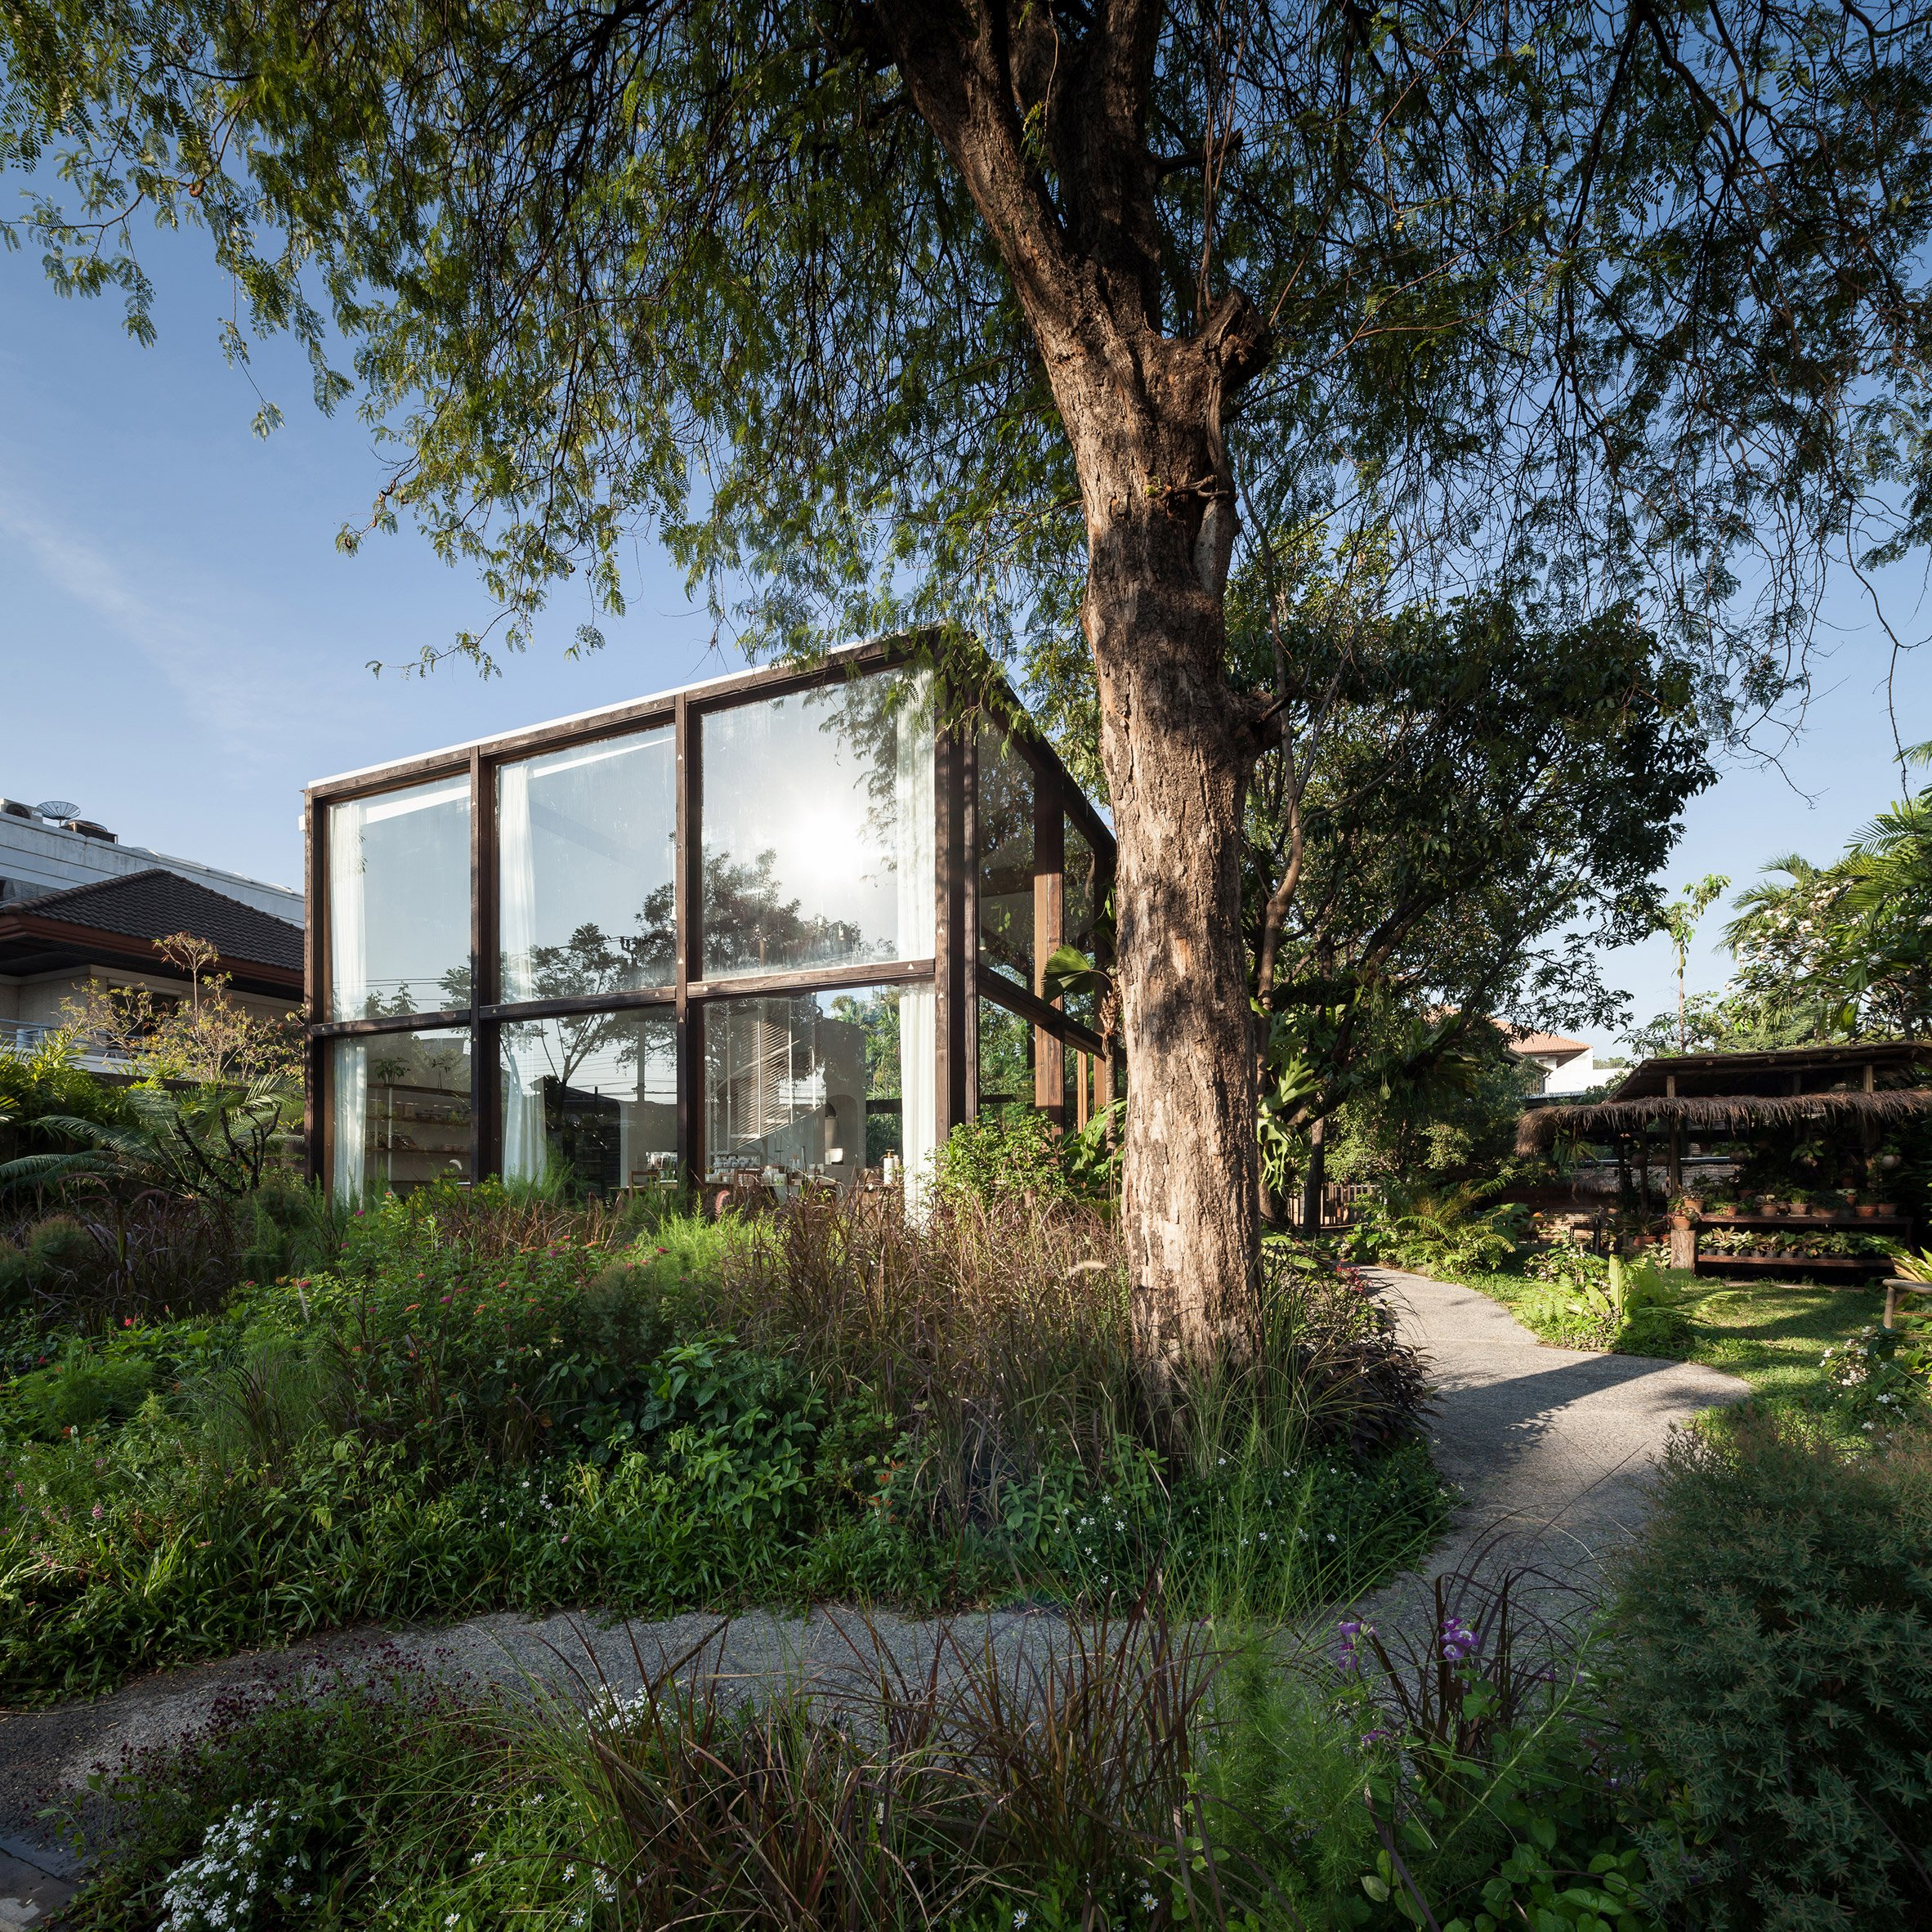 Gridded glazing frames garden views from NitaProw's organic beauty shop in Bangkok